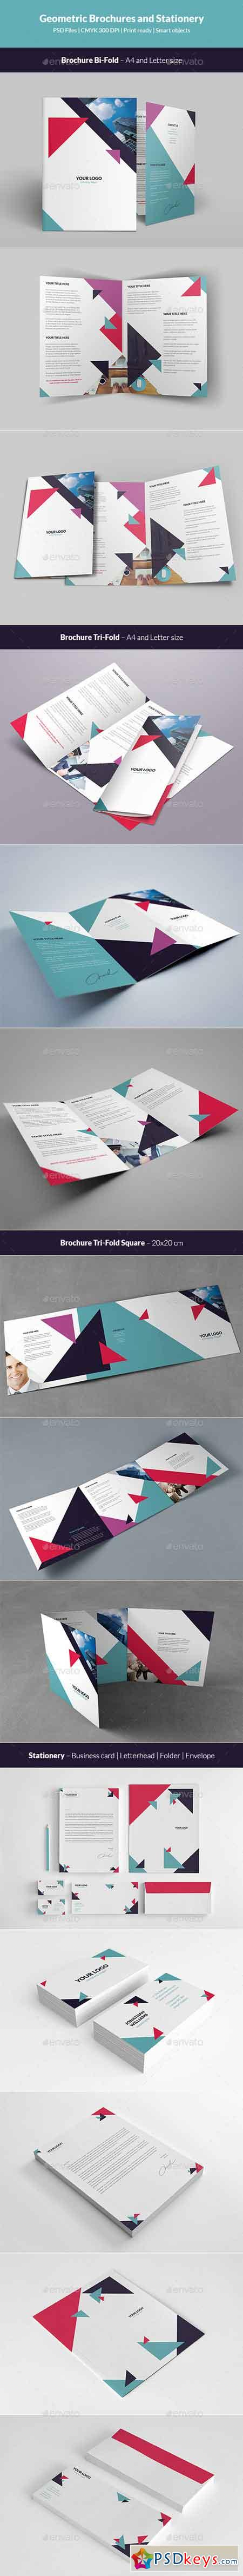 Geometric Brochures and Stationery 12451024